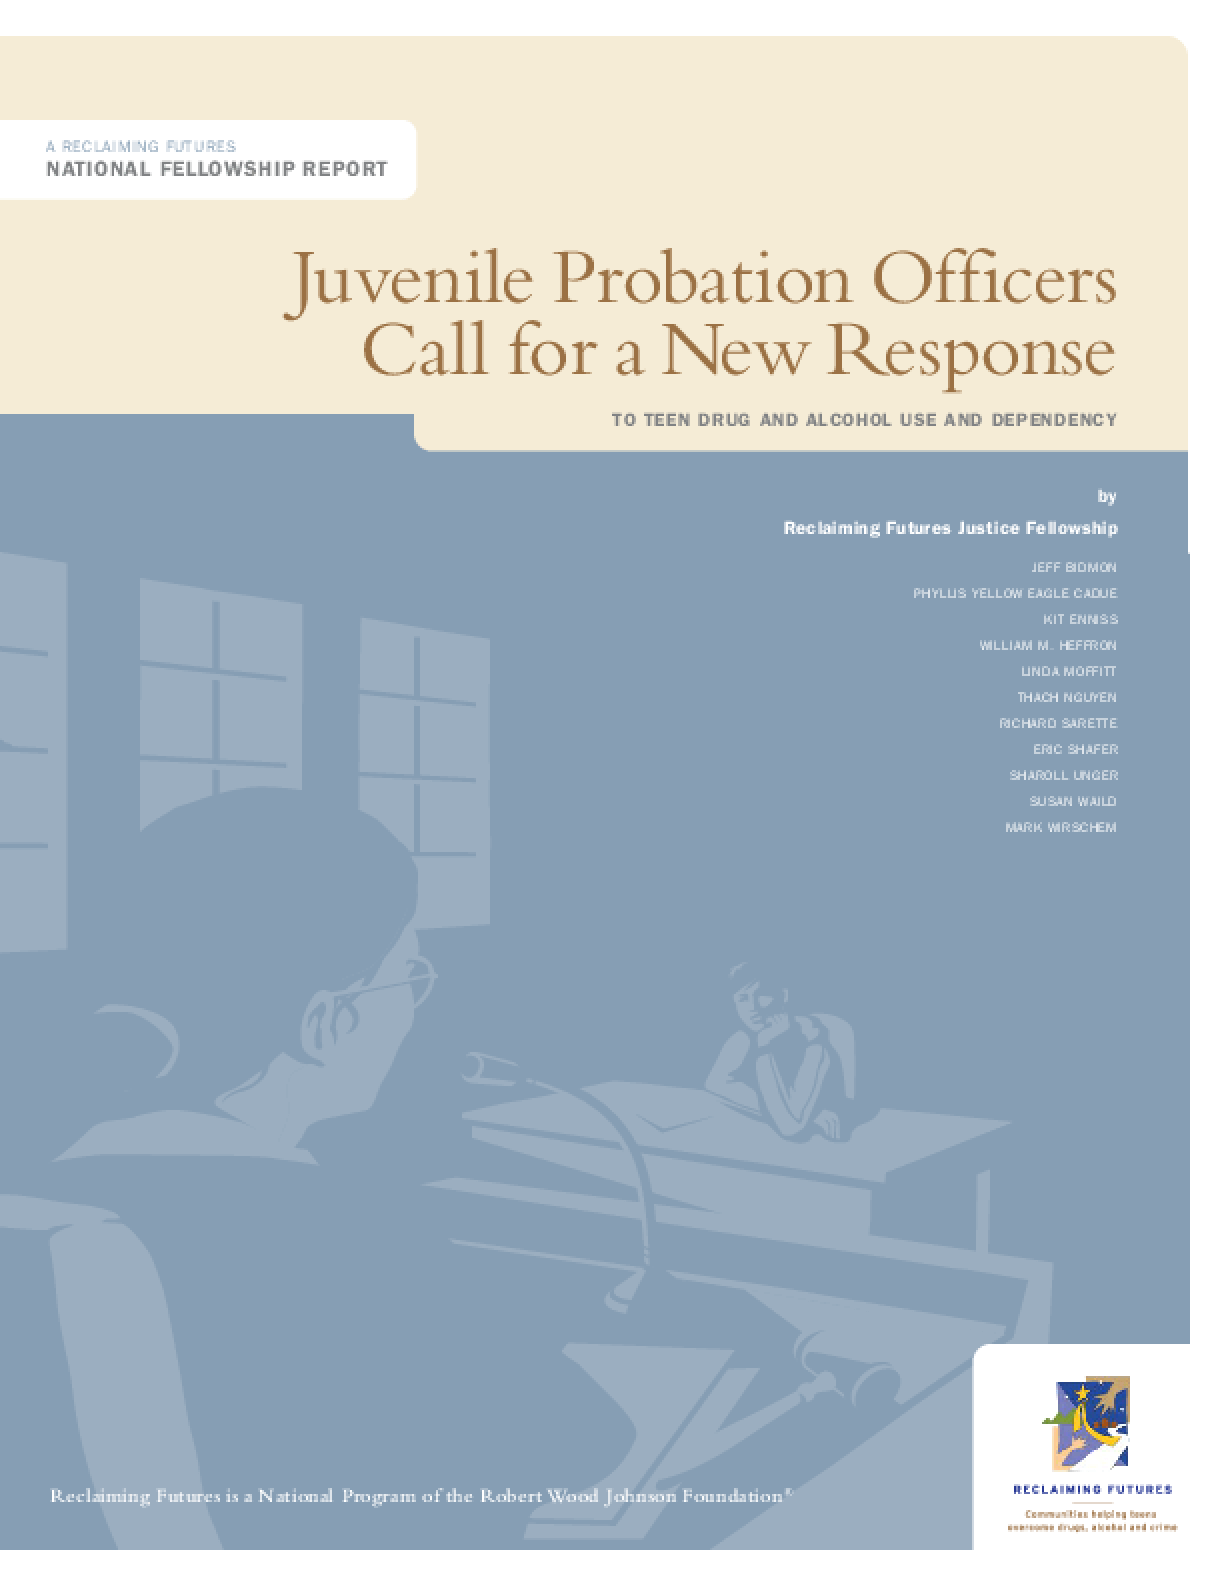 Juvenile Probation Officers Call for a New Response to Teen Drug and Alcohol Use and Dependency